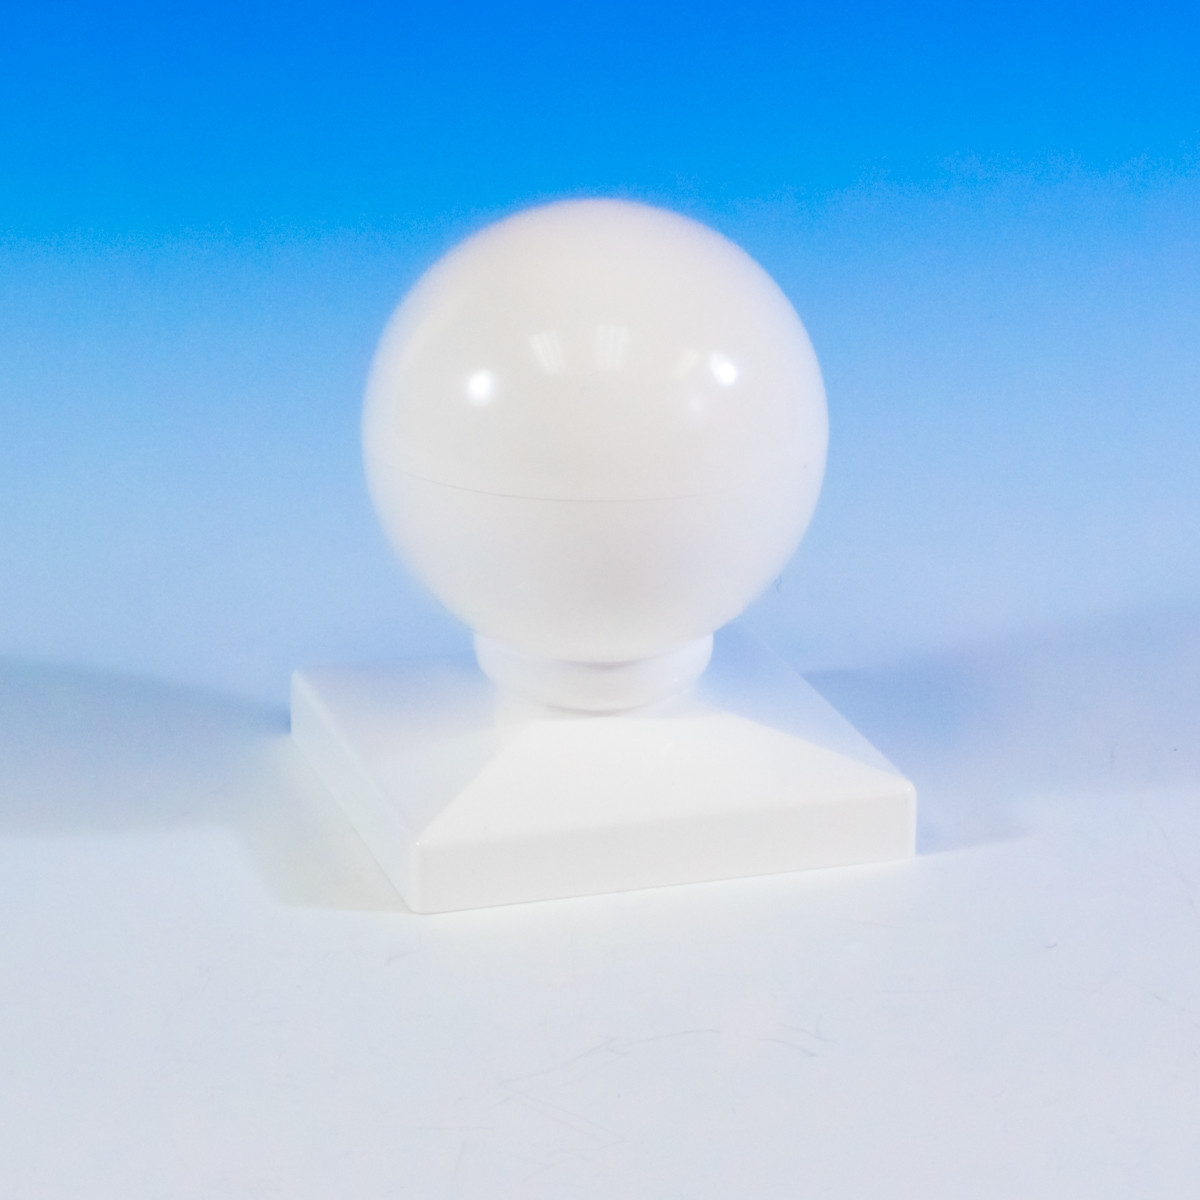 Ball Post Cap by Durables - White